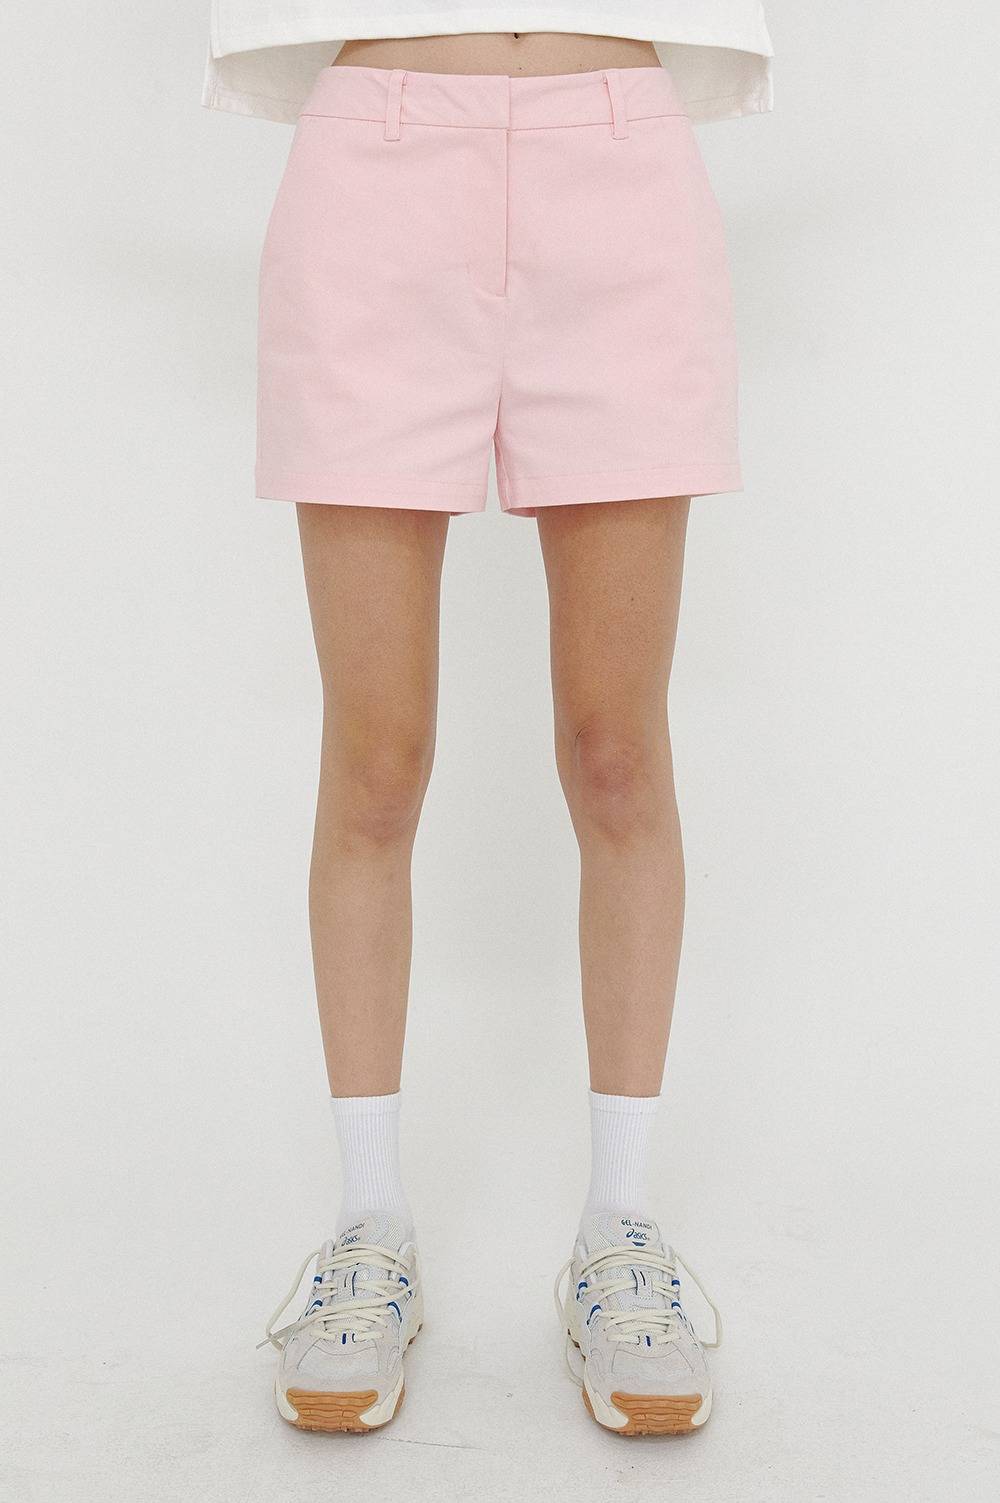 clove - [5/7(금) 예약배송][SS21 clove] Club Cotton Shorts Pink